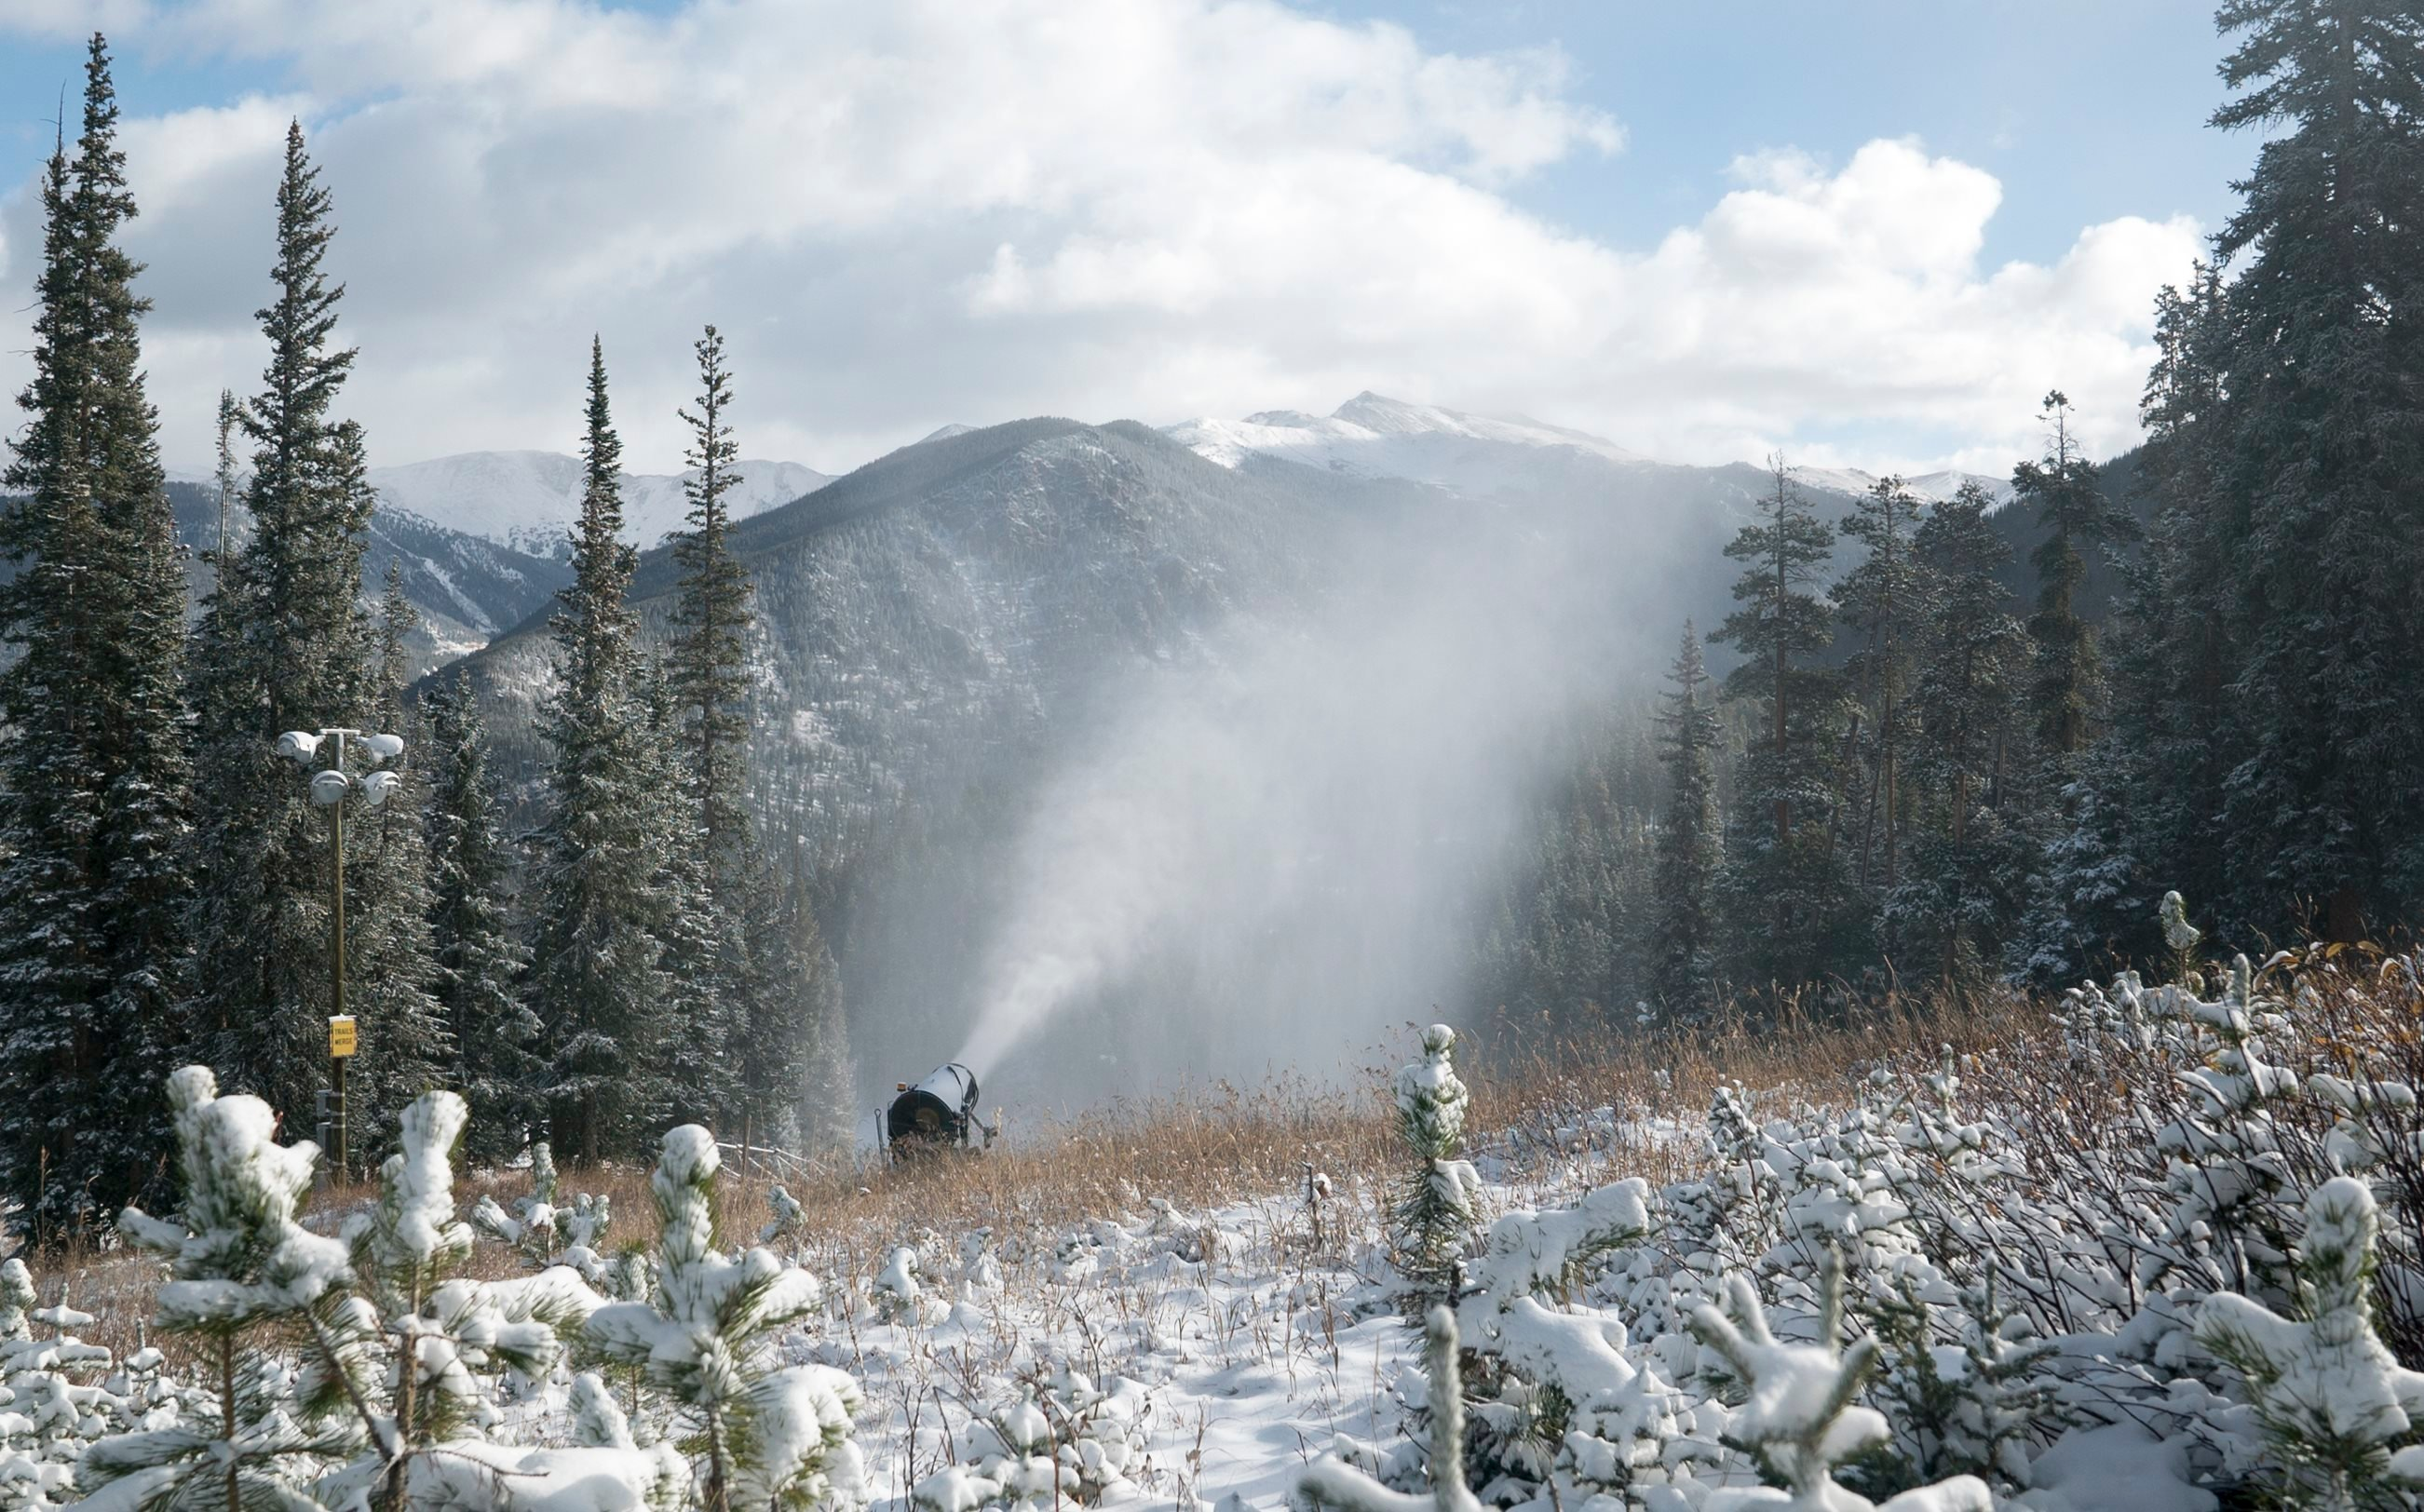 Crews at Keystone Resort are busy making snow for opening day on November 10.